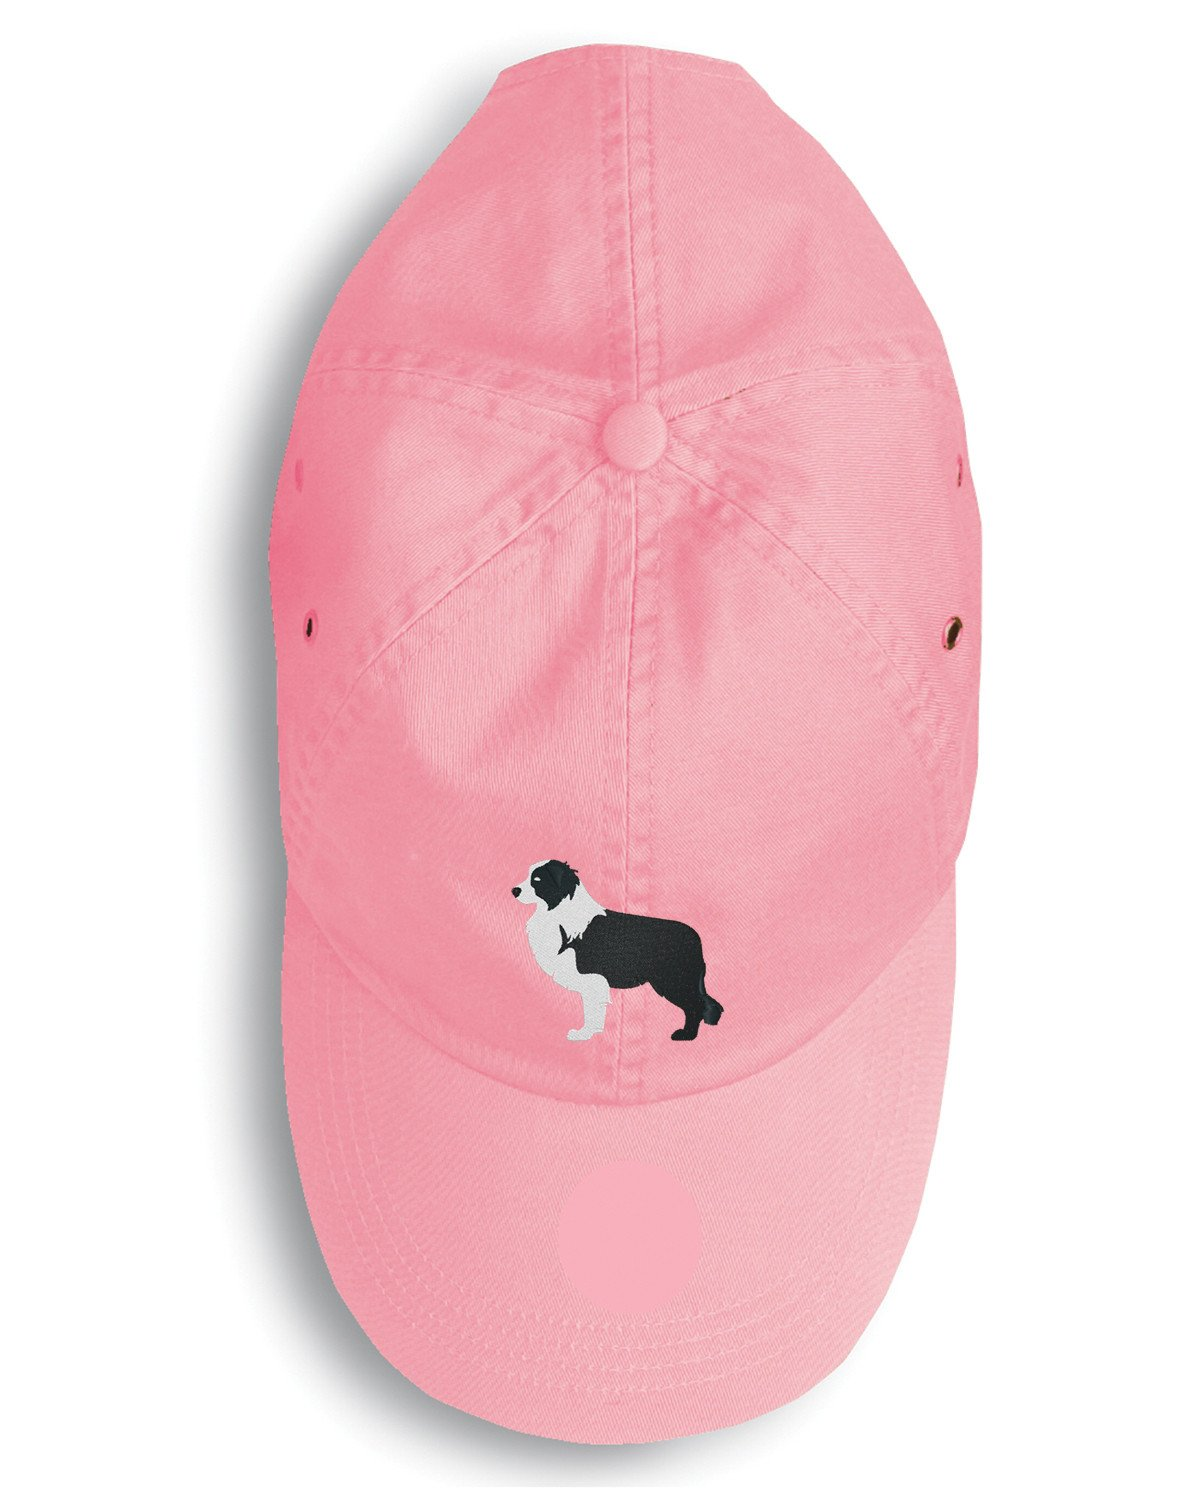 Black Border Collie Embroidered Baseball Cap BB3423PK-156 by Caroline's Treasures